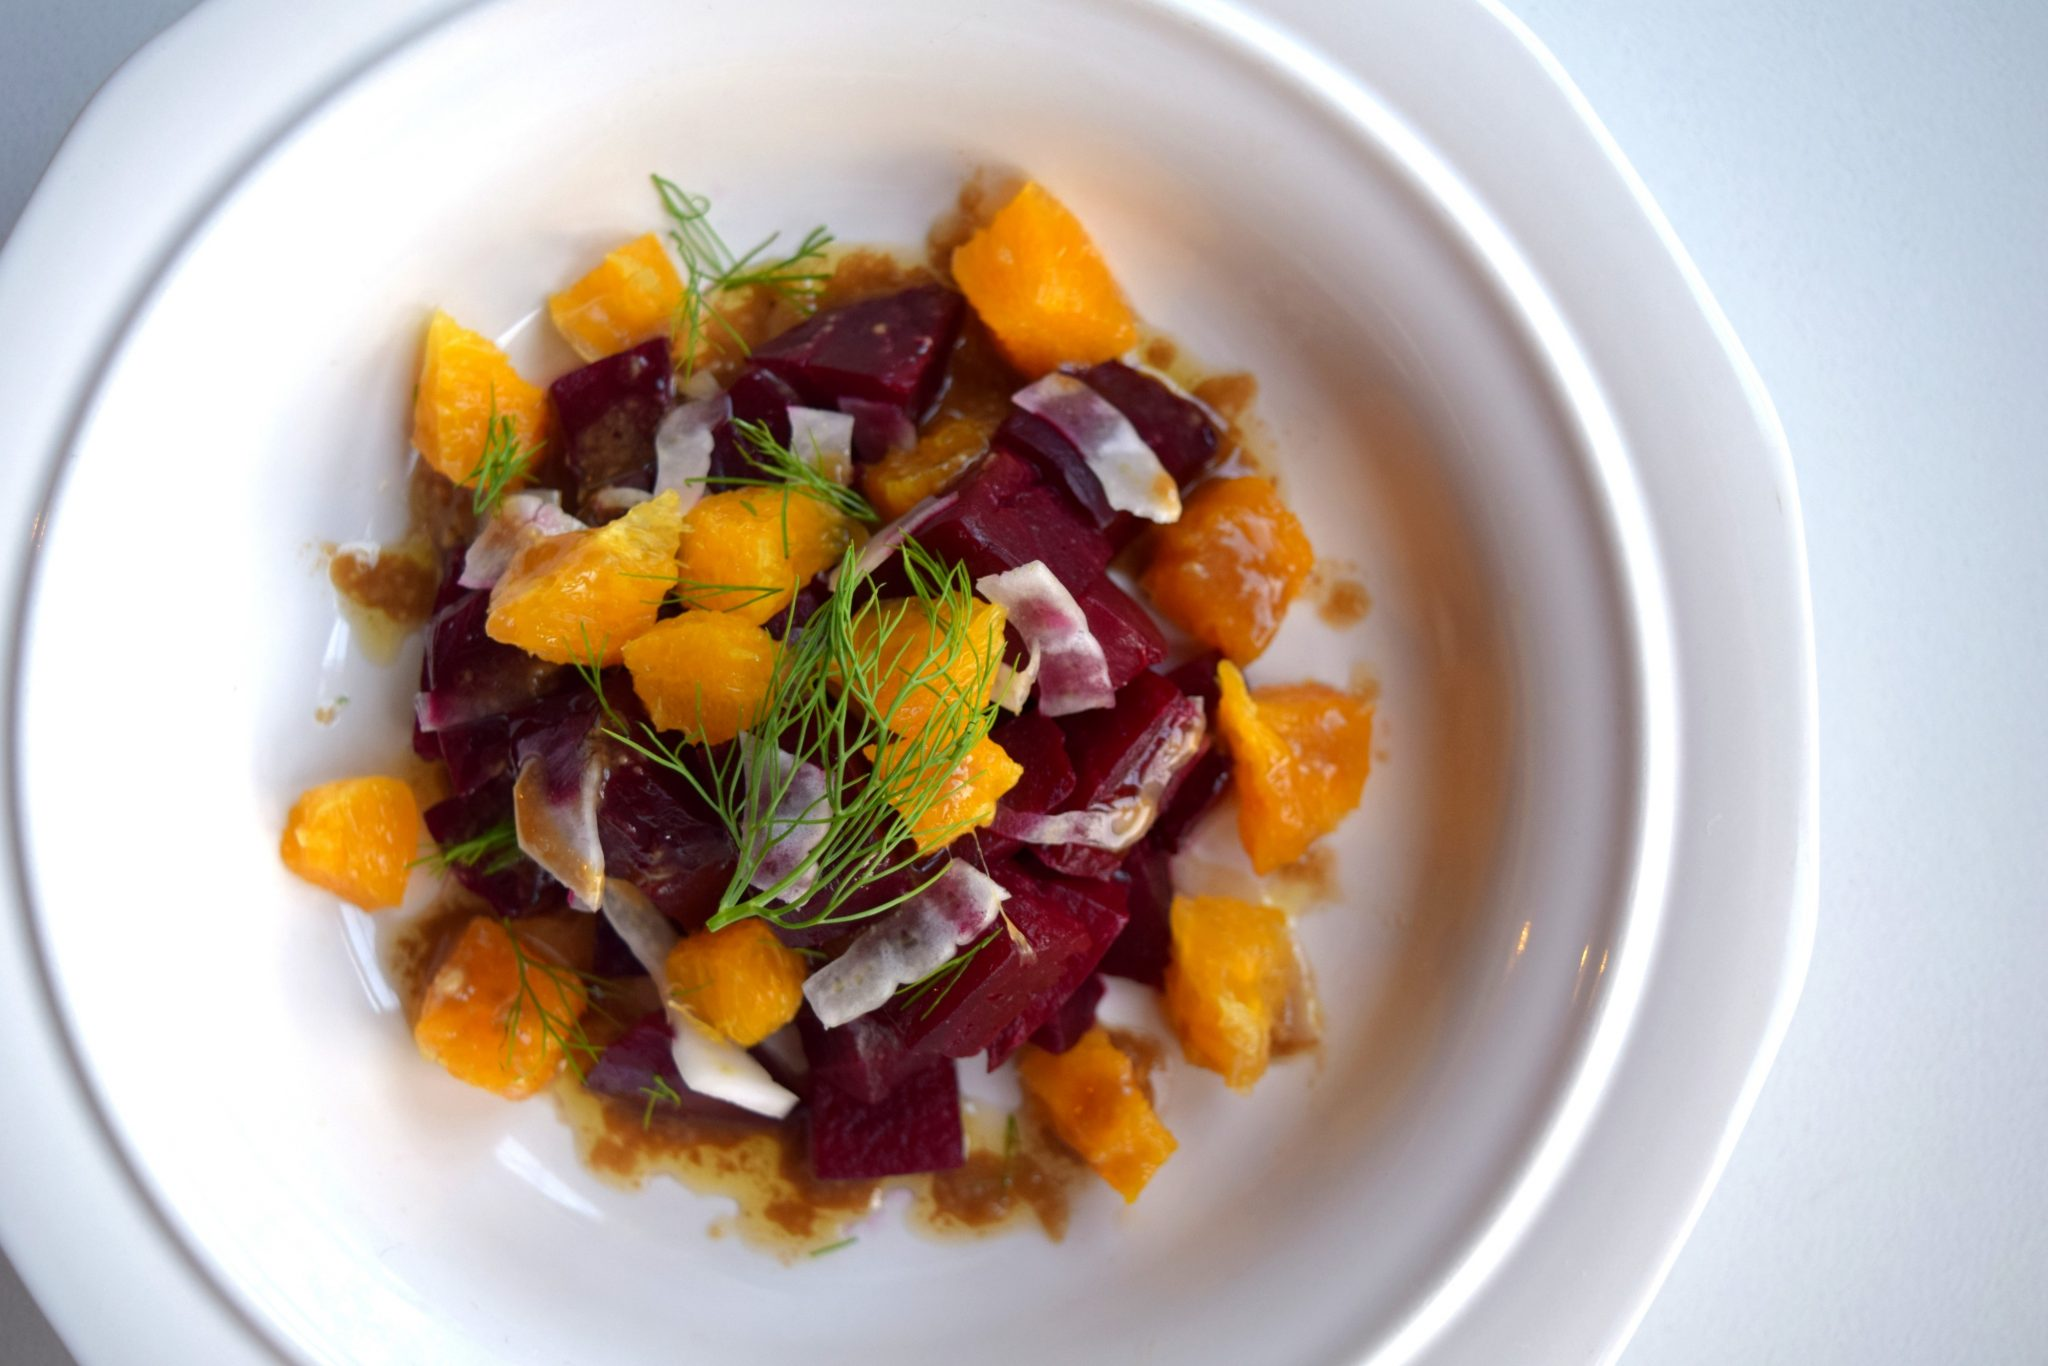 Roasted Beet, Orange, and Fennel Salad with Balsamic Vinaigrette